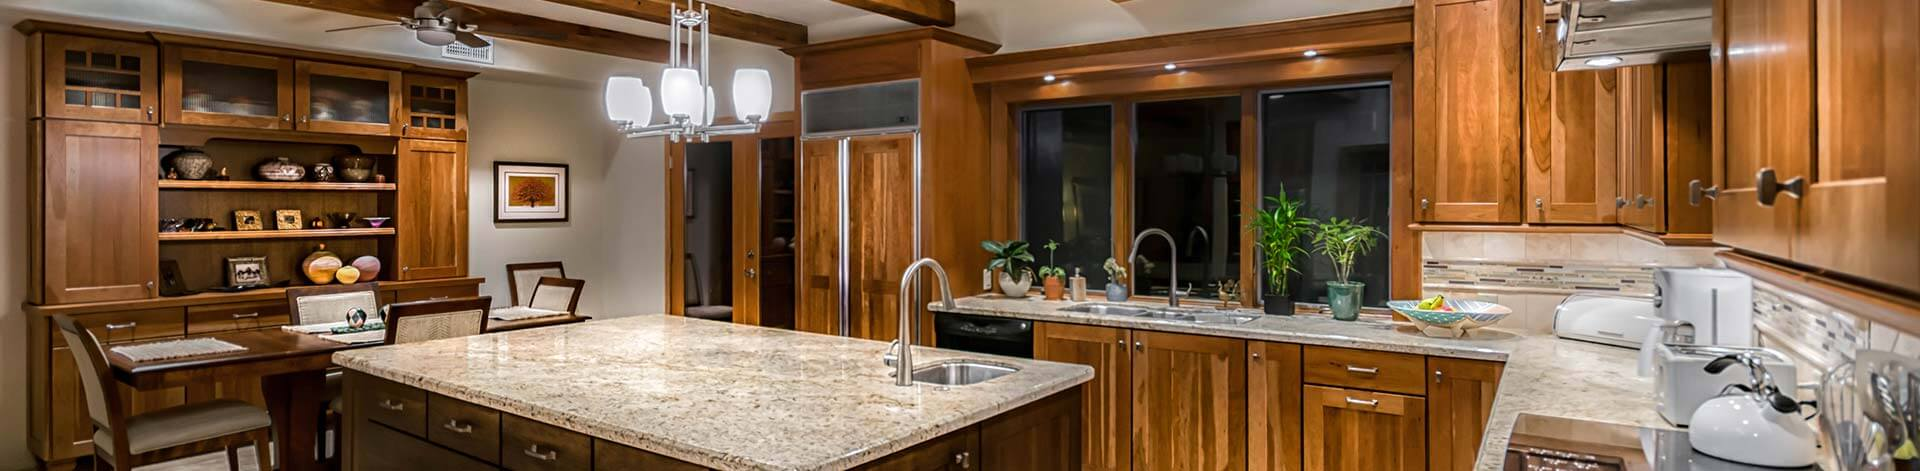 costs remodeling with kitchen cabinets cost remodel easy by ikea complaints also kitchens examples